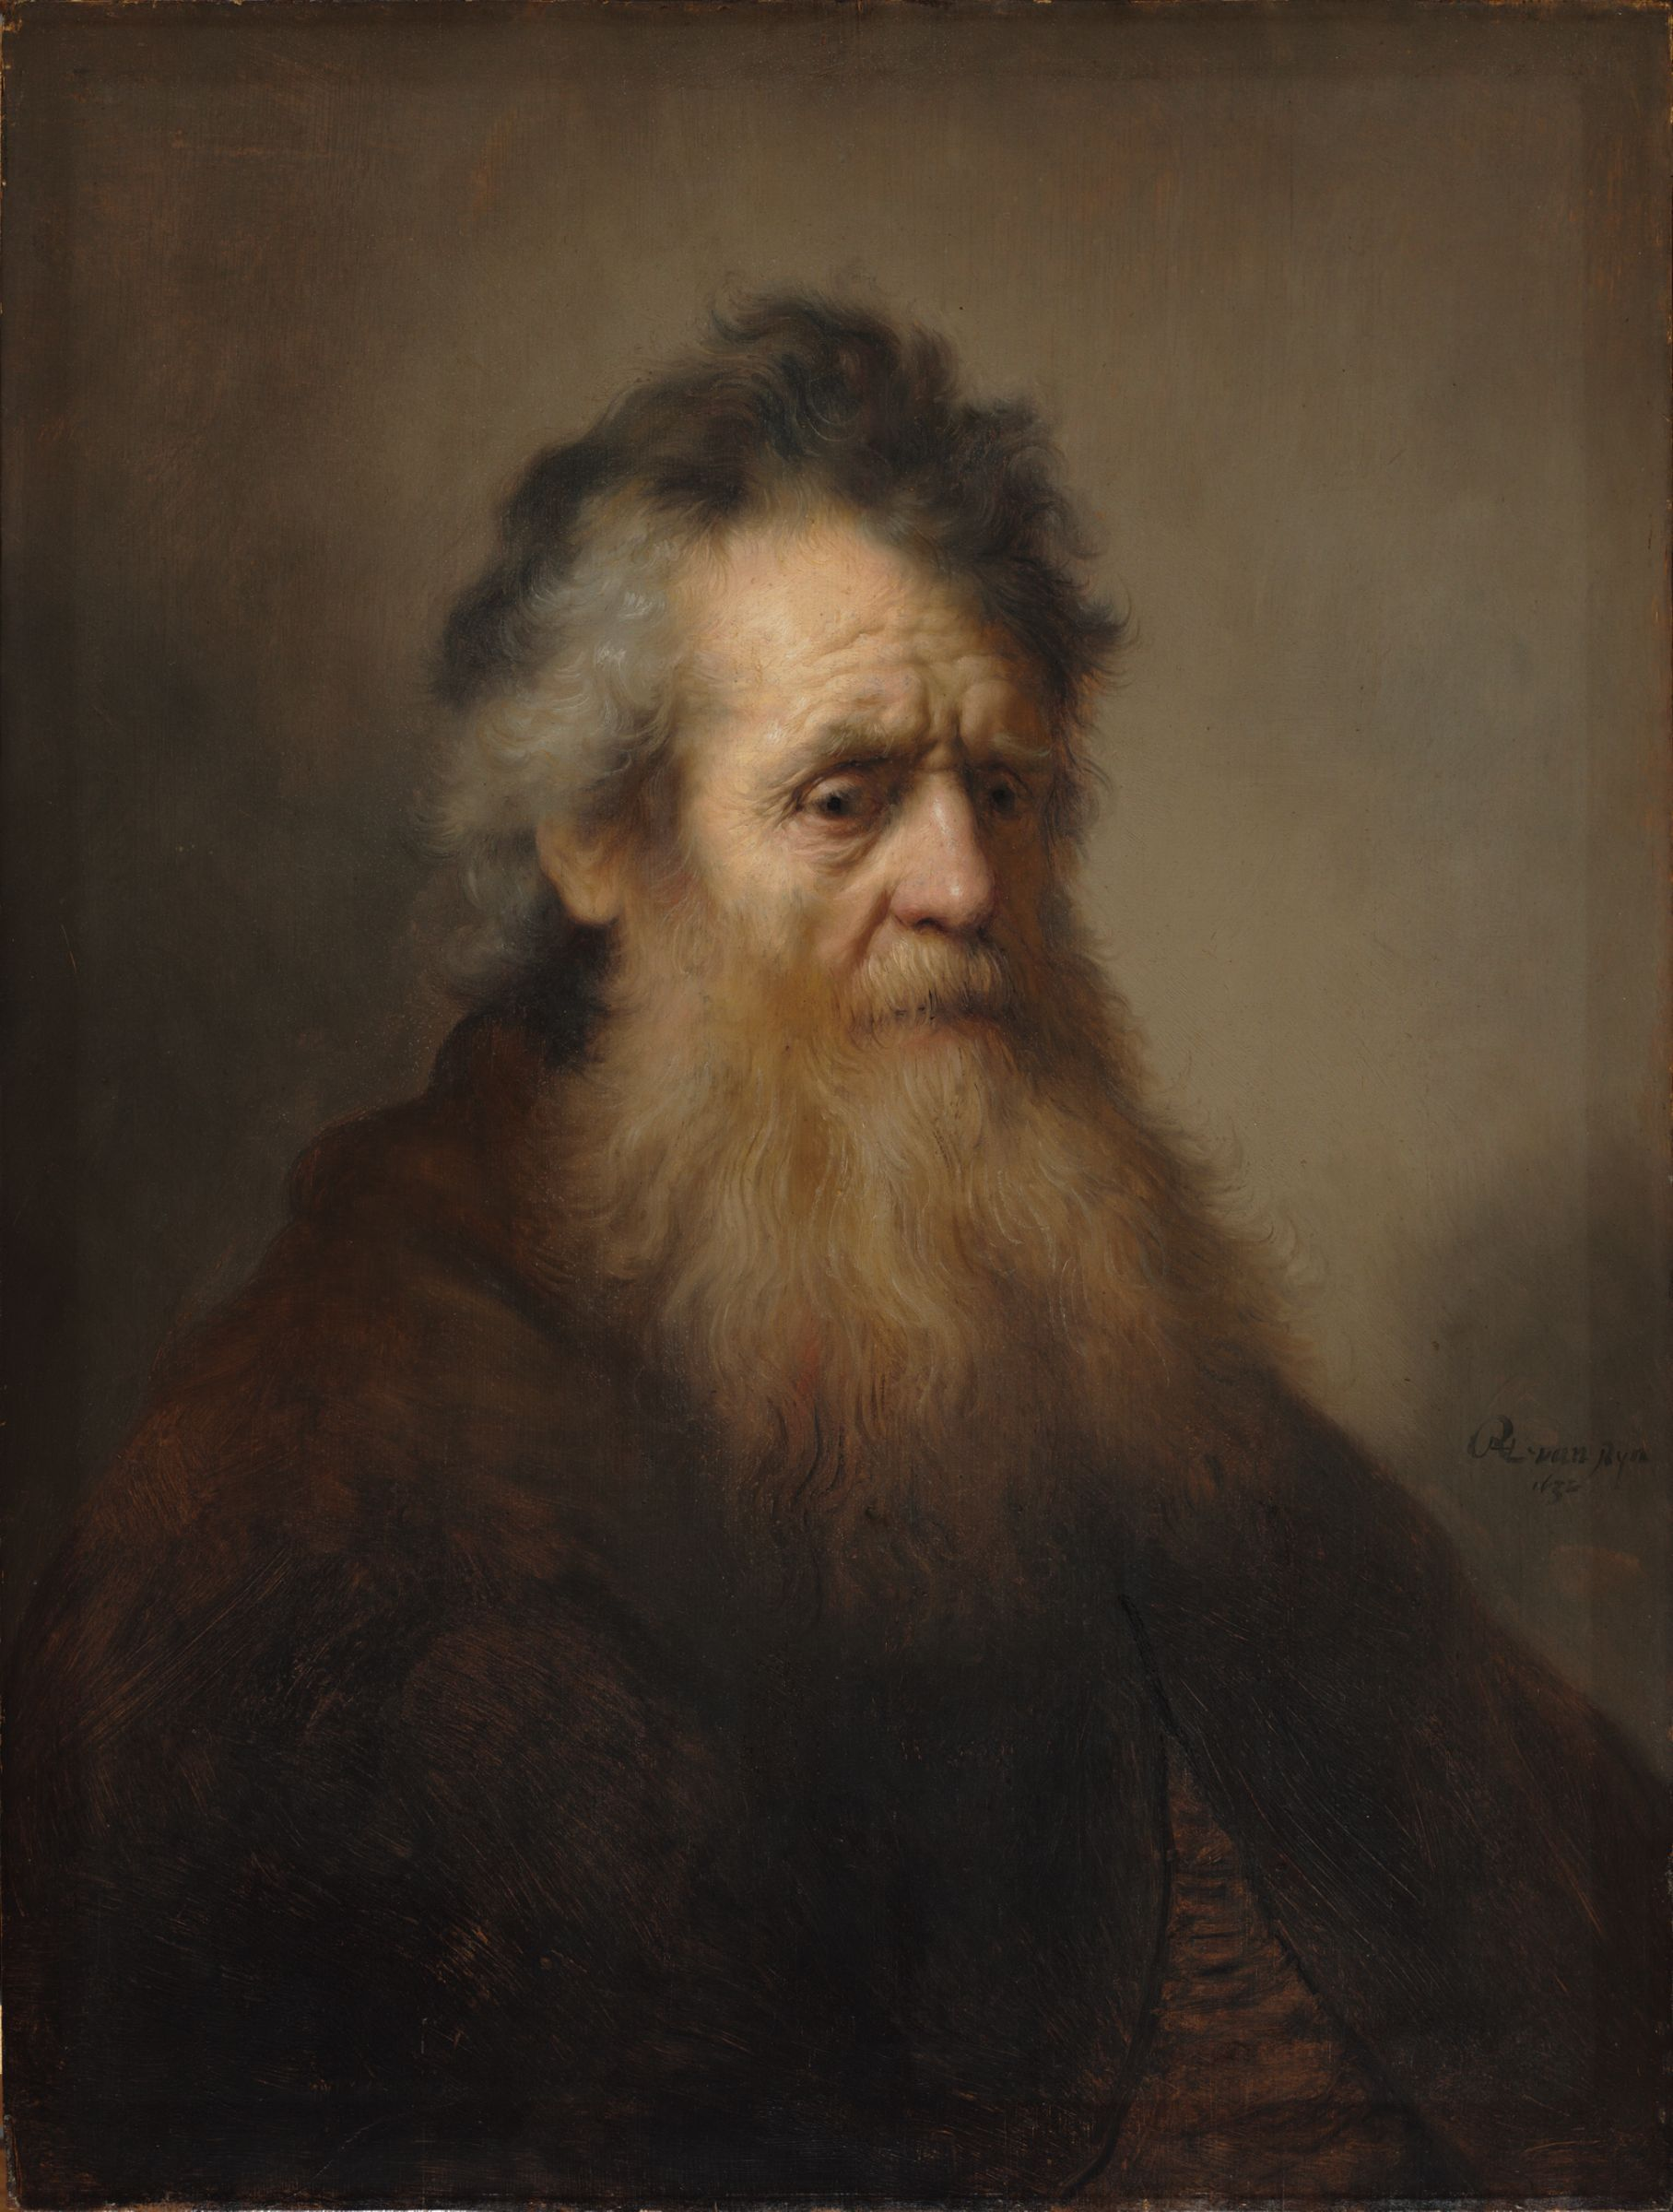 rembrandt harmenszoon van rijn dutch dutch golden age portrait of an old man 1632 by rembrandt van rijn harvard museums